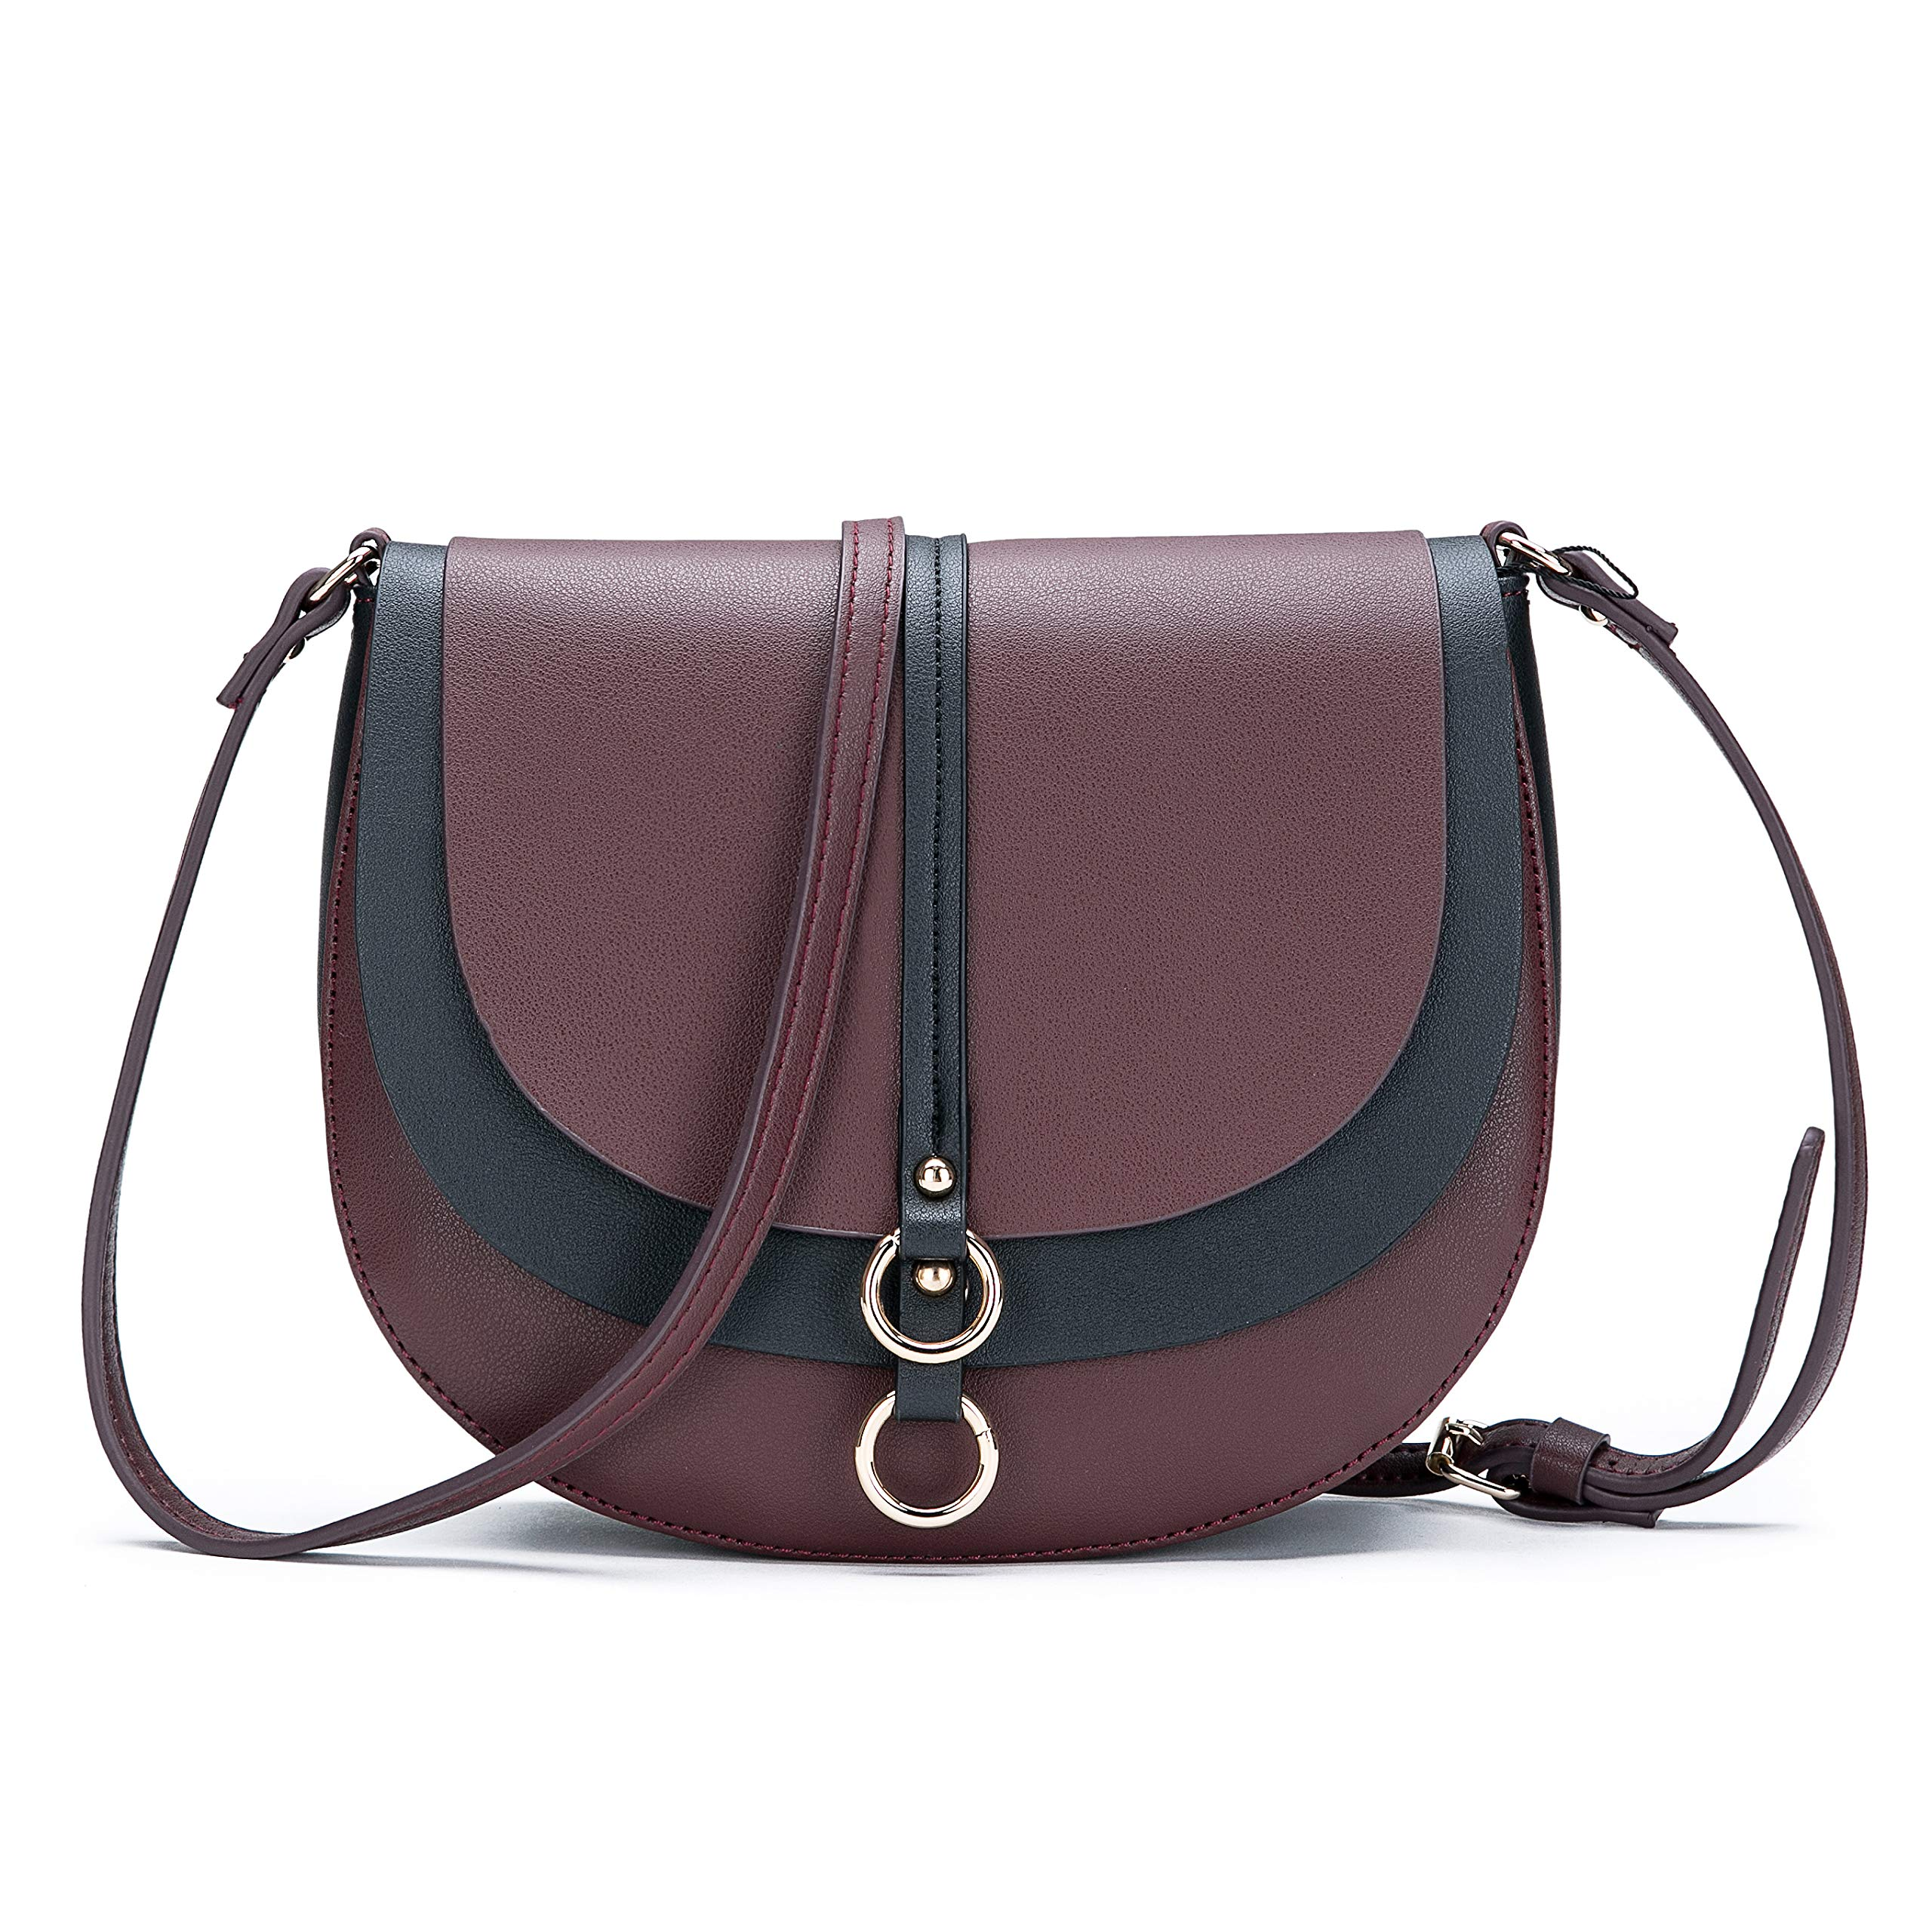 Women Crossbody Bag Saddle Shoulder Bag Small Purse Brown Hasp Satchel and Tote PU Leather